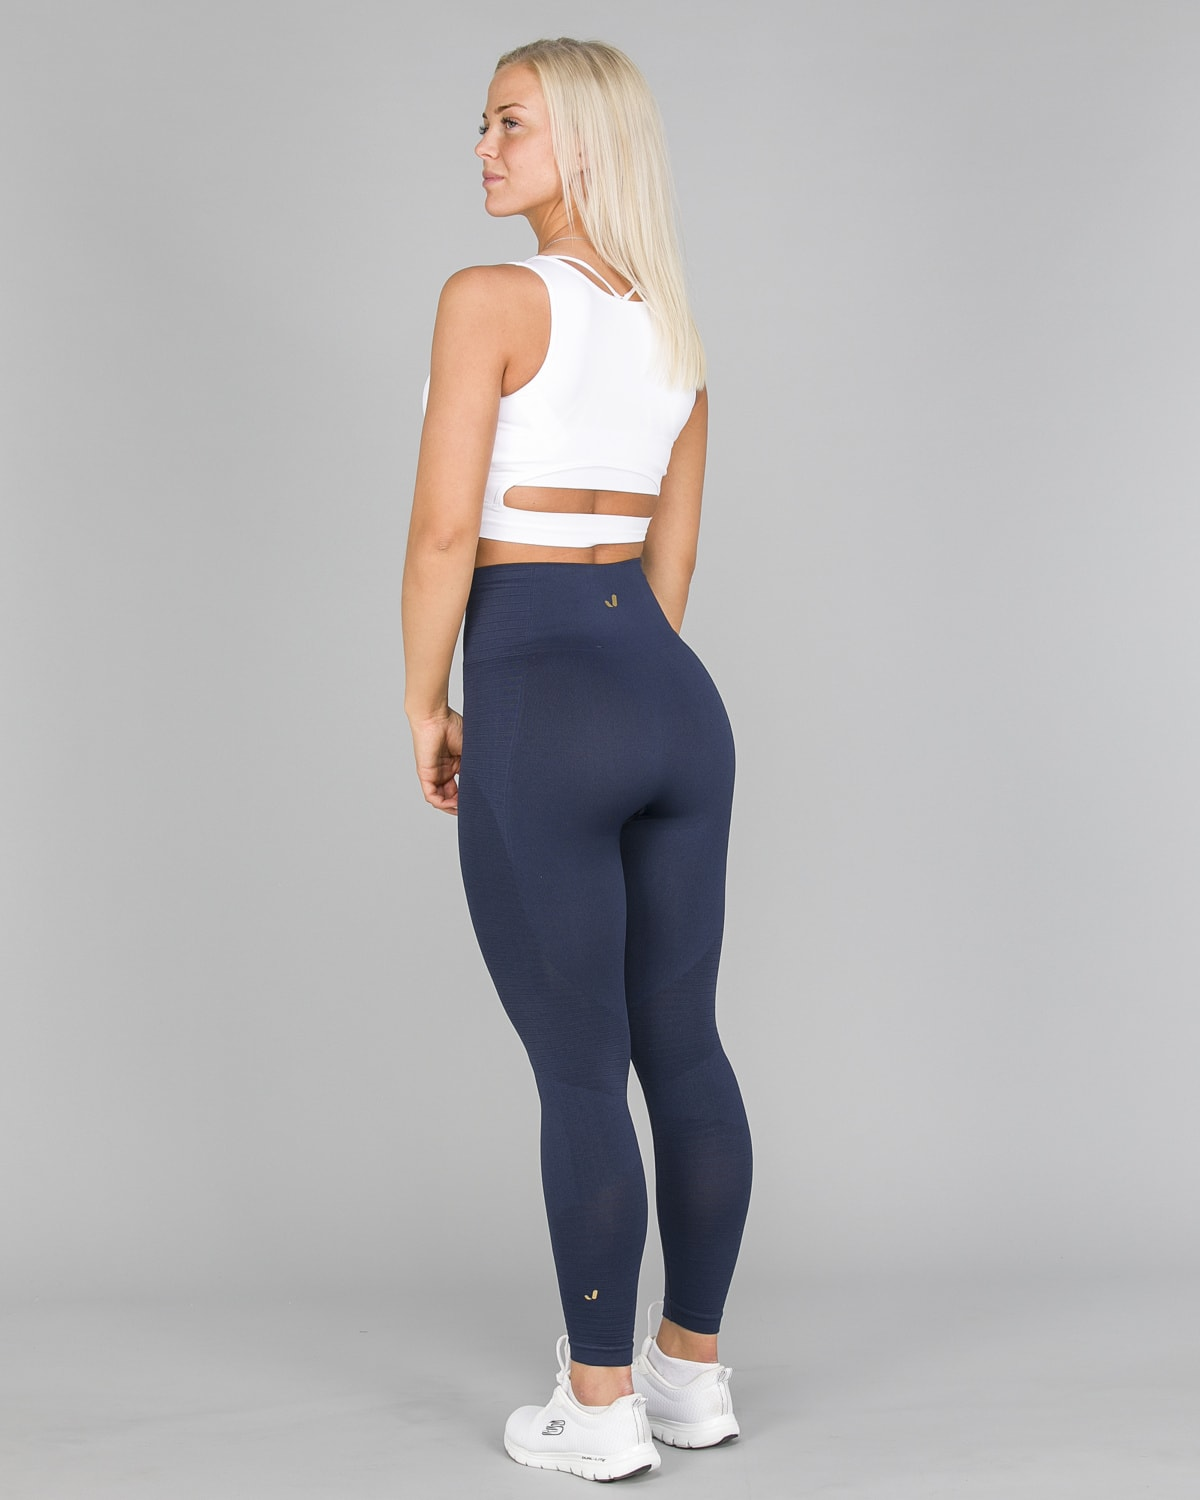 Jerf Gela 2.0 tights Navy Blue21